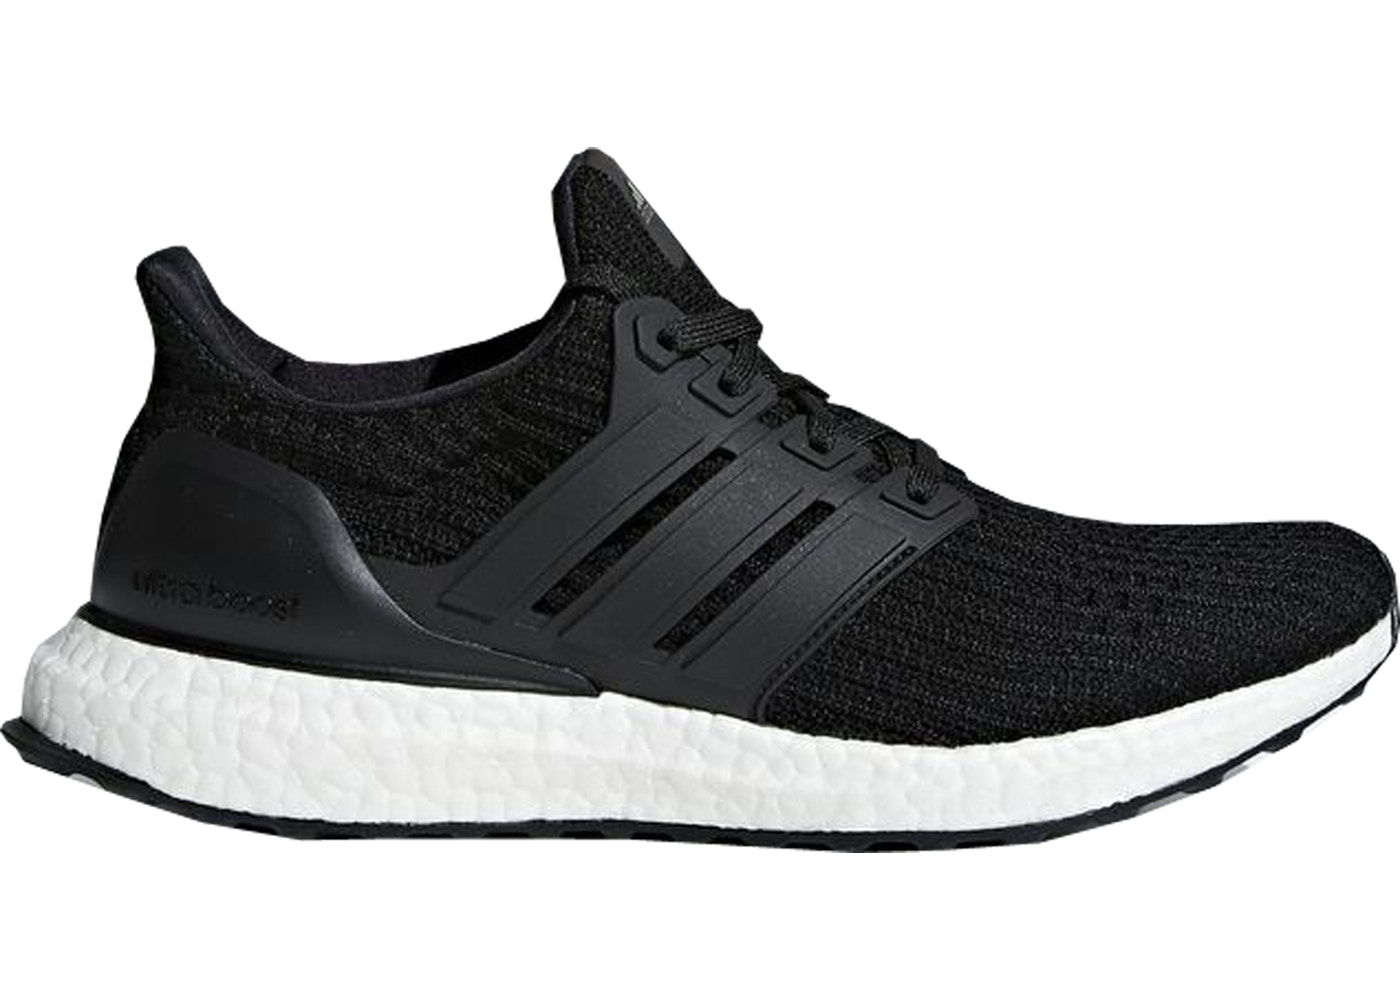 separation shoes 216c4 8c066 adidas Ultra Boost 4.0 Core Black (W) - BB6149